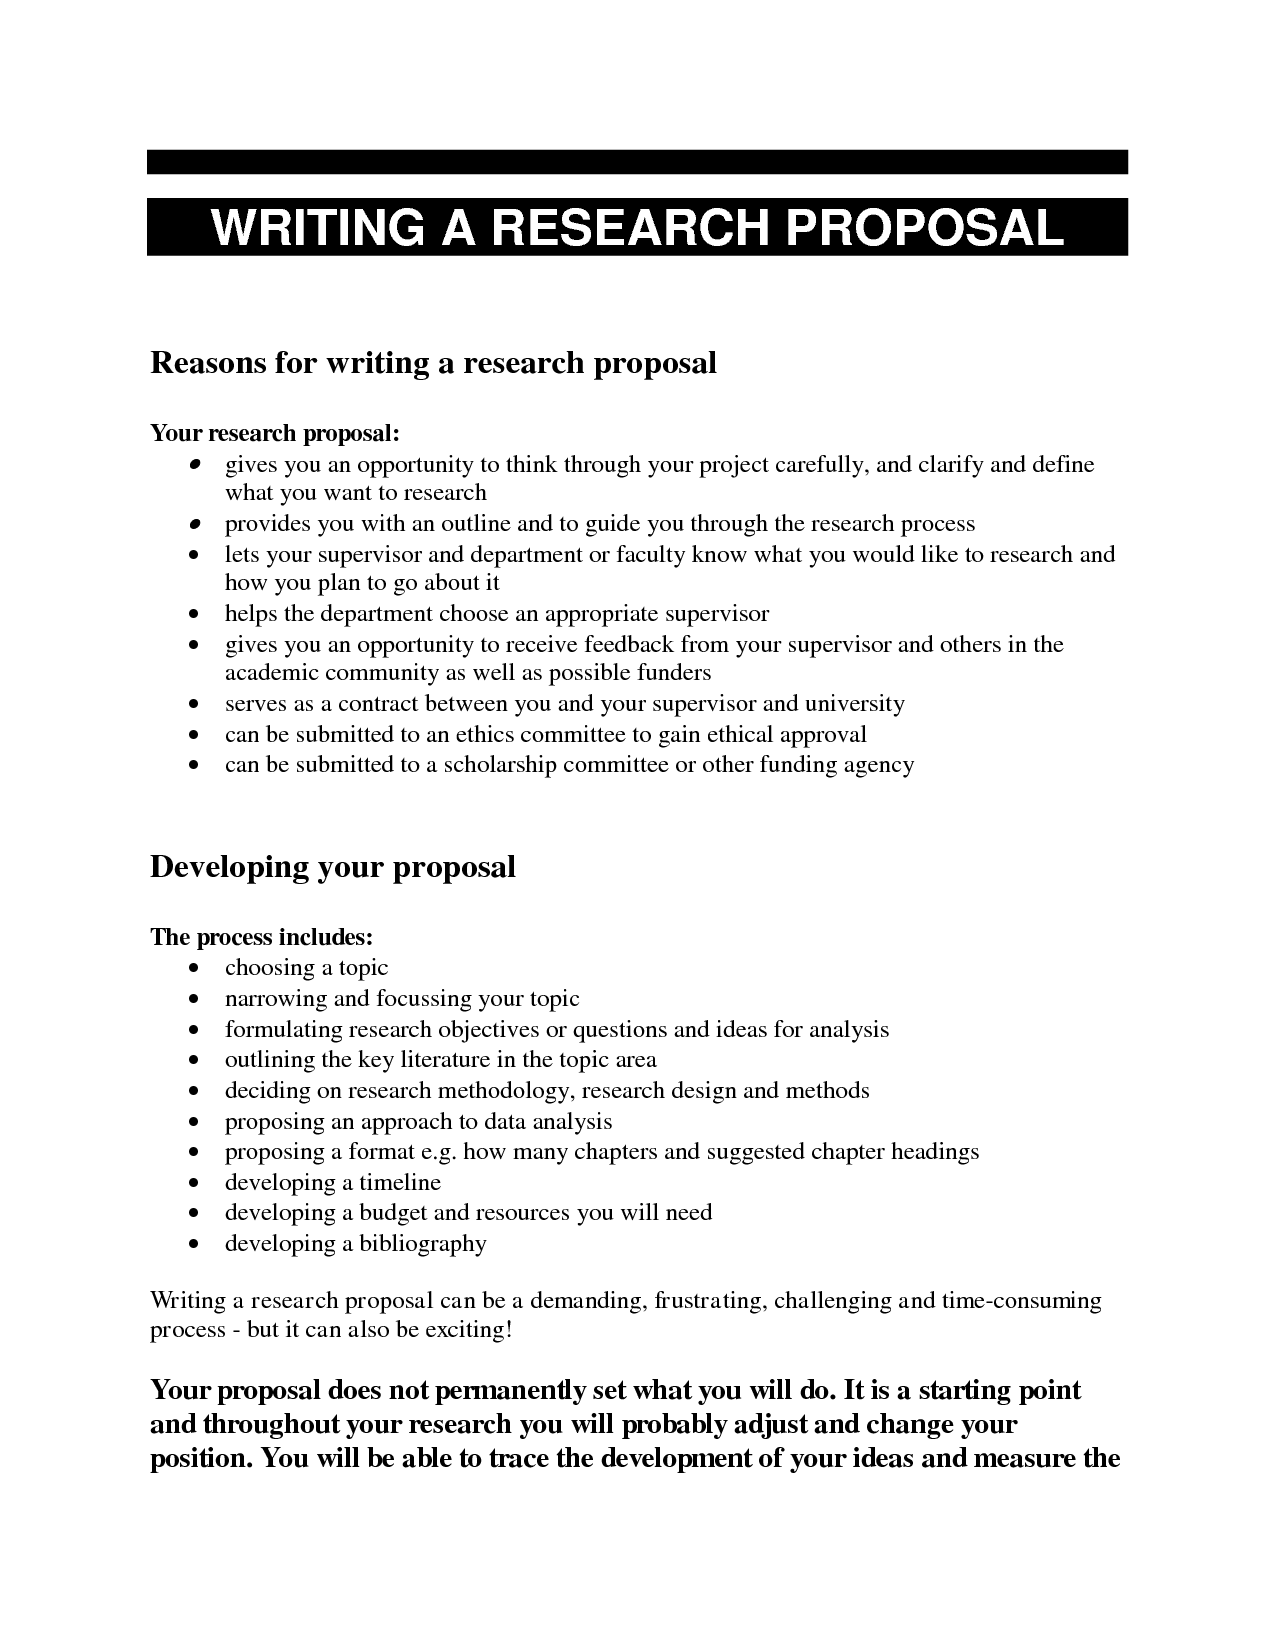 Research proposal paper examples topics